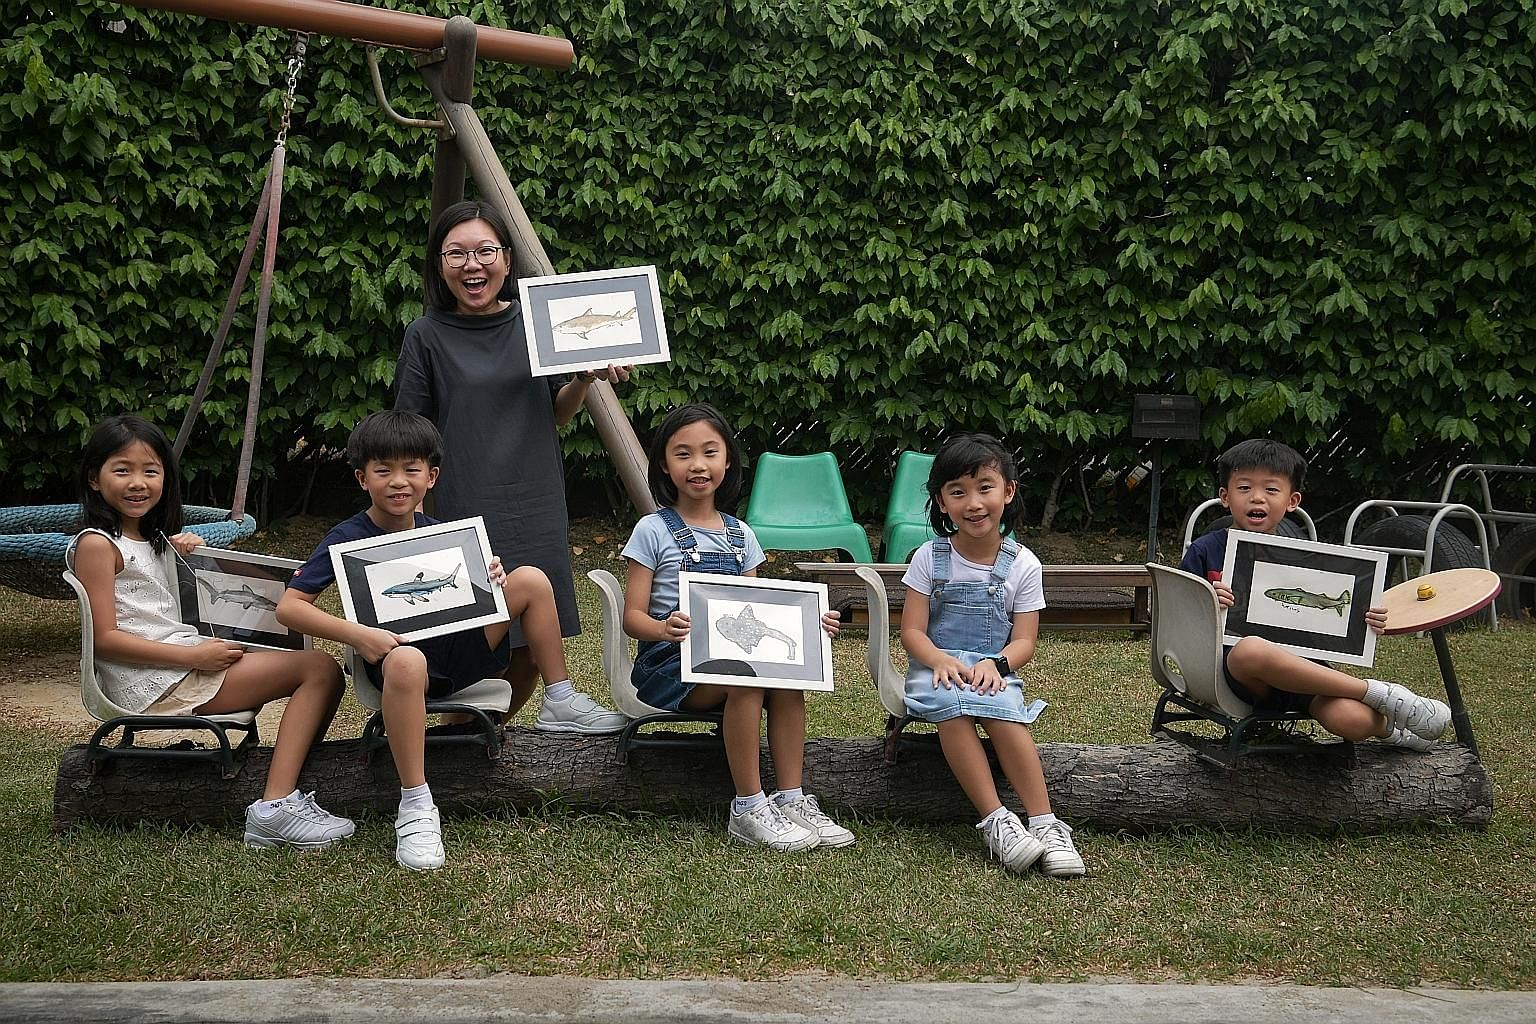 EtonHouse Pre-School senior teacher Wong Wei Sum with the children - (from left) Lily Huang, Liam Ong, Chloe Tan, Katie Tan and Lucius Ong - behind a video that was part of WWF-Singapore's anti-shark fin campaign on social media last year.